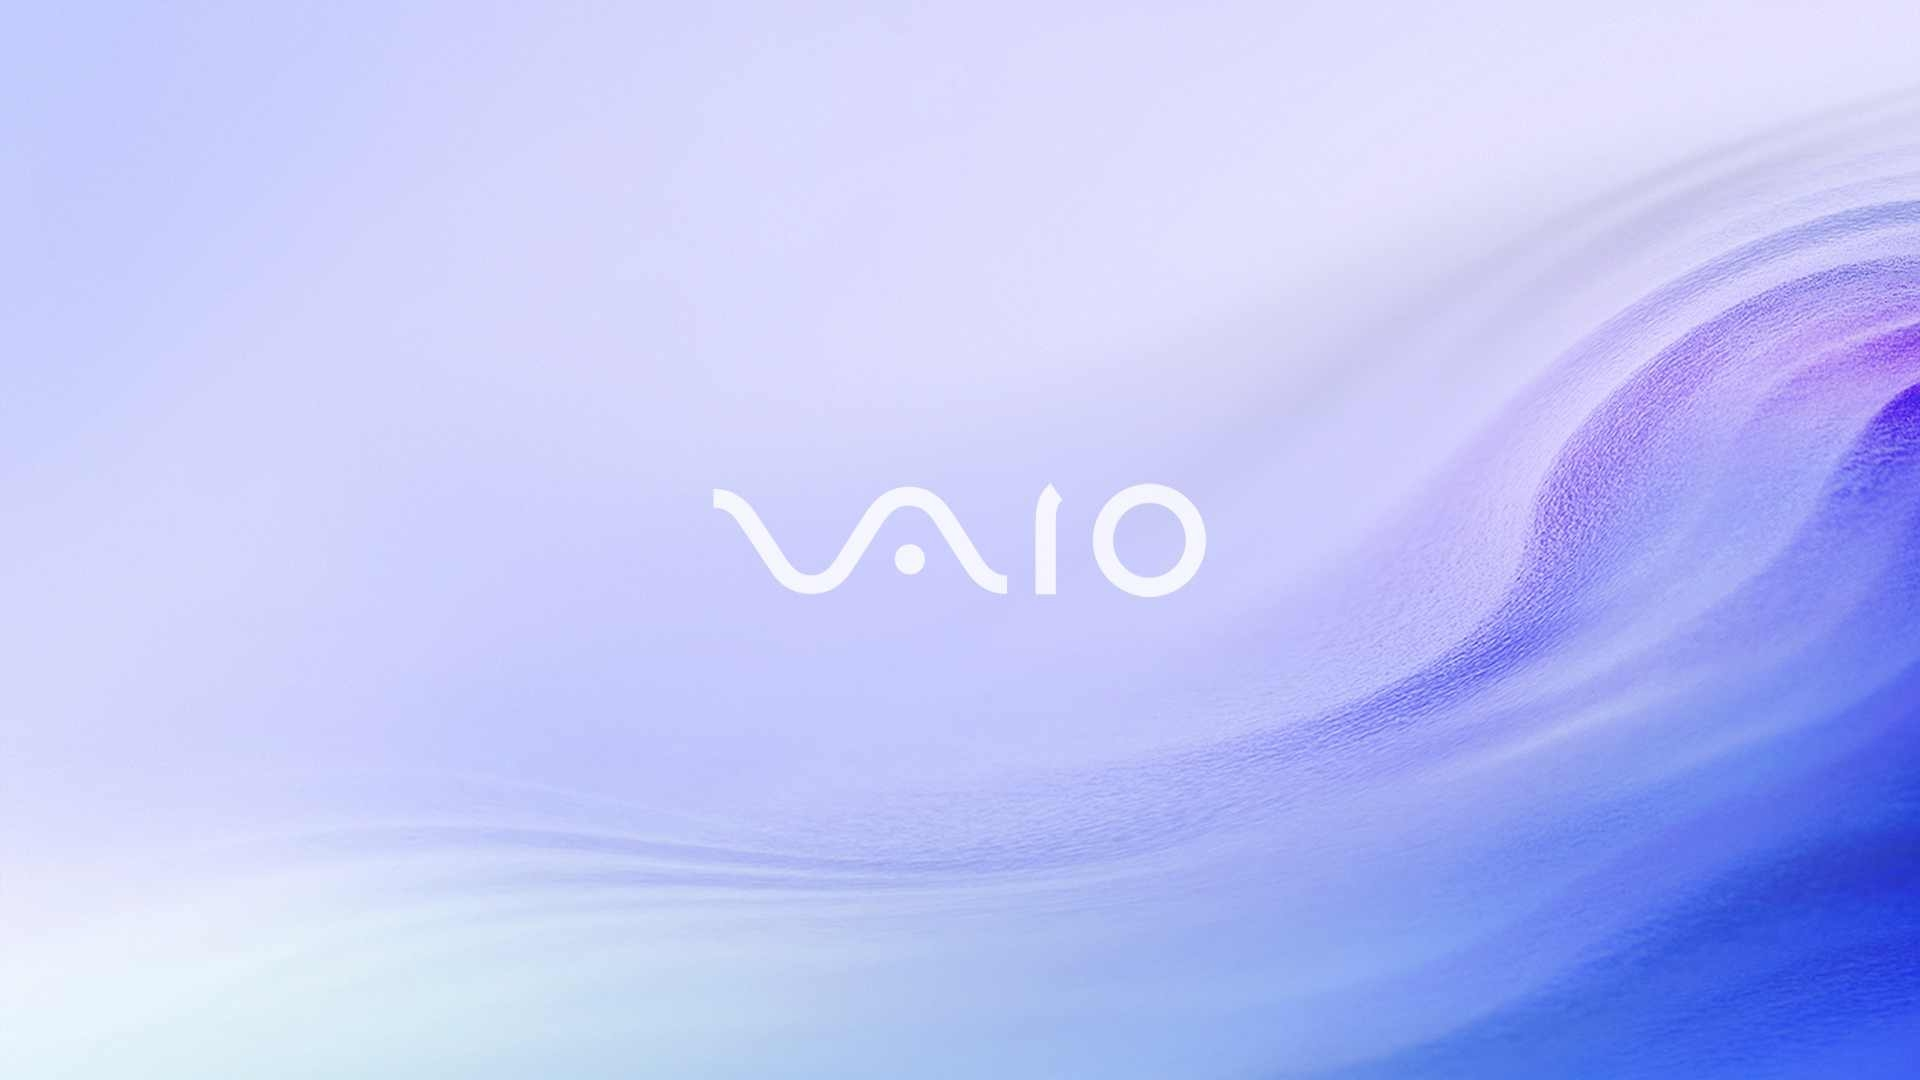 Fantastic Vaio Wallpaper